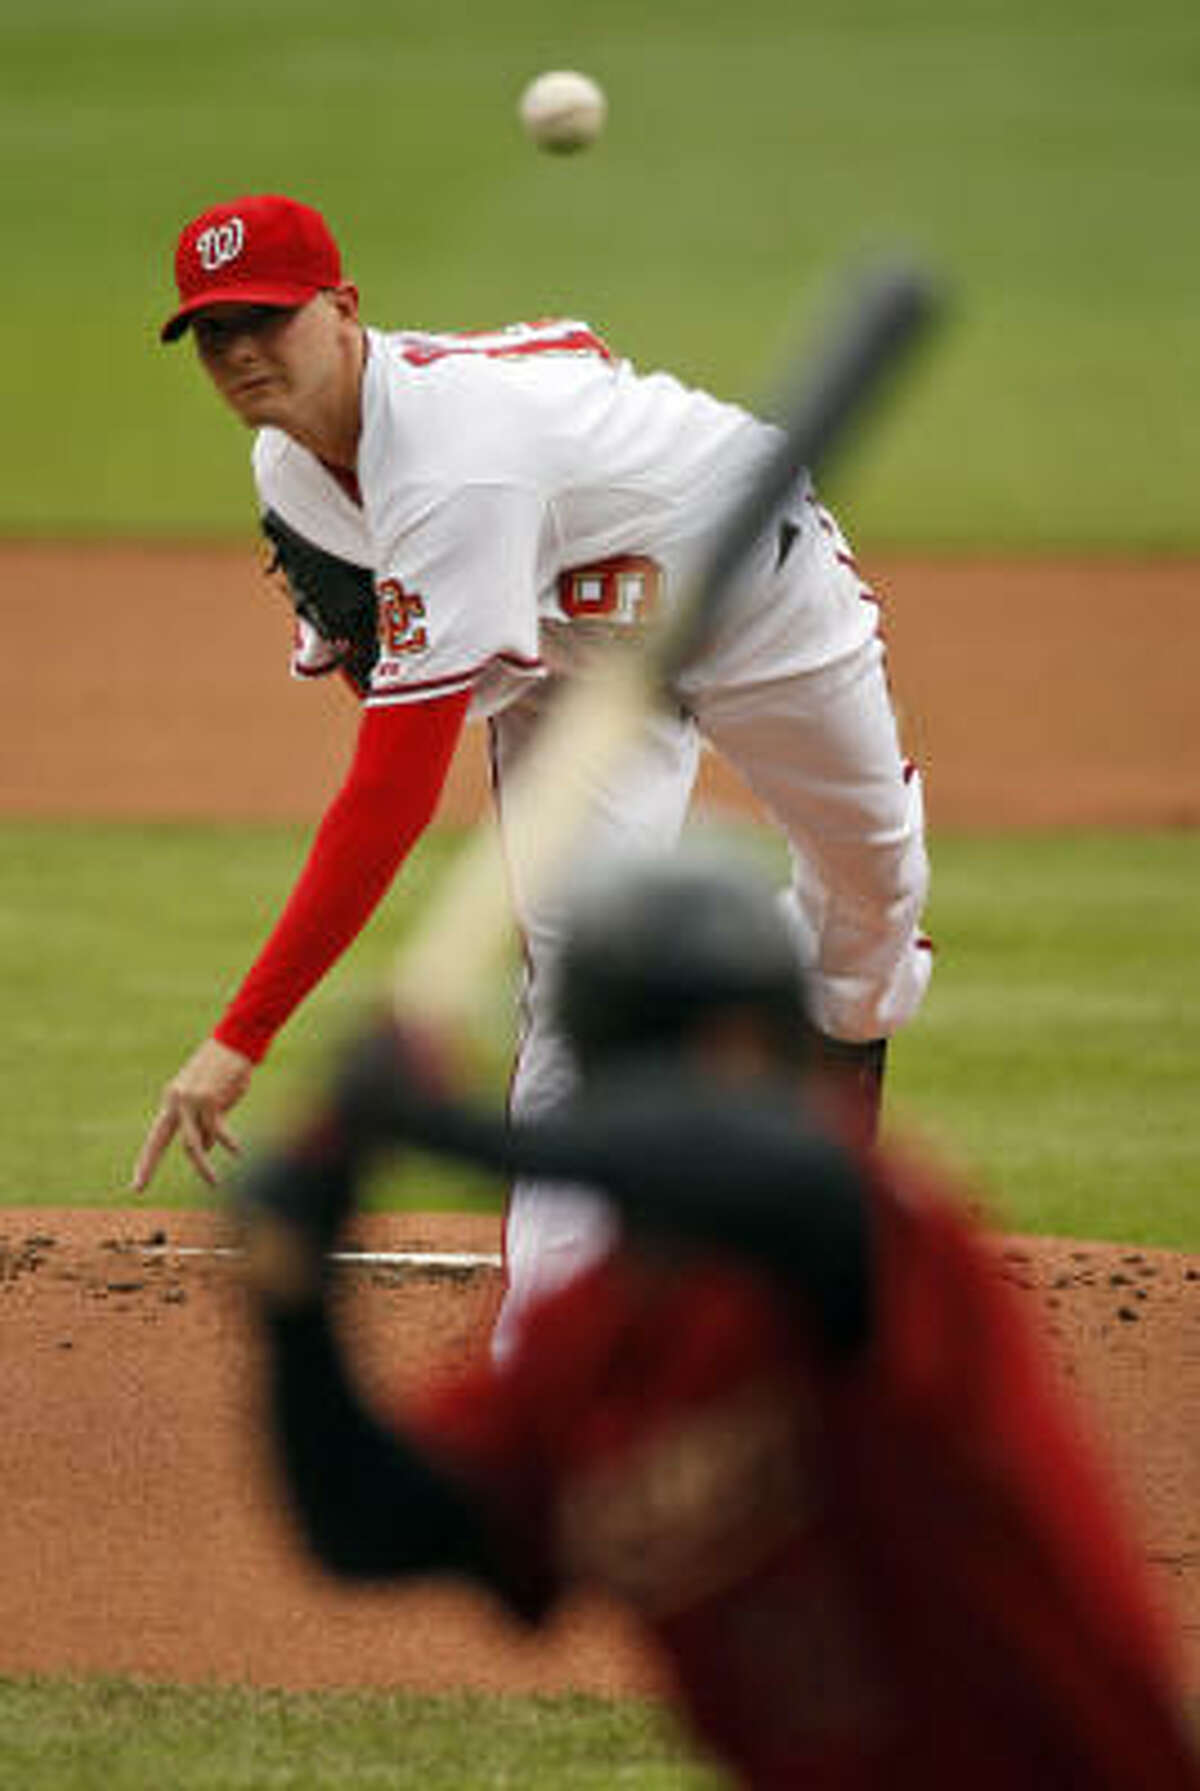 Nationals lefthander Scott Olsen throws against Astros outfielder Michael Bourn during the first inning.